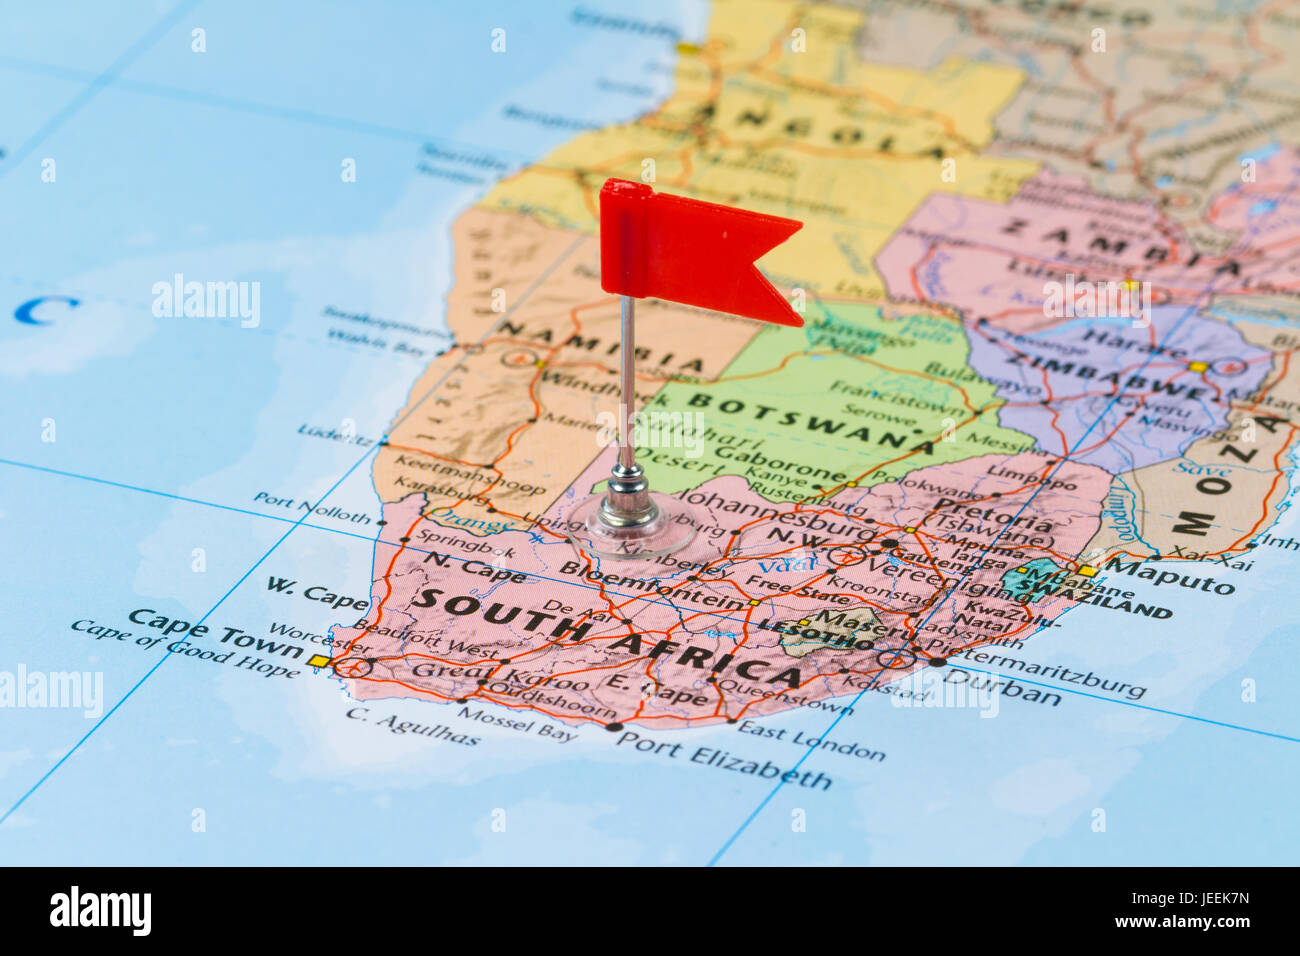 Photo Of South Africa Marked By Red Flag In Holder. Country On African  Continent.